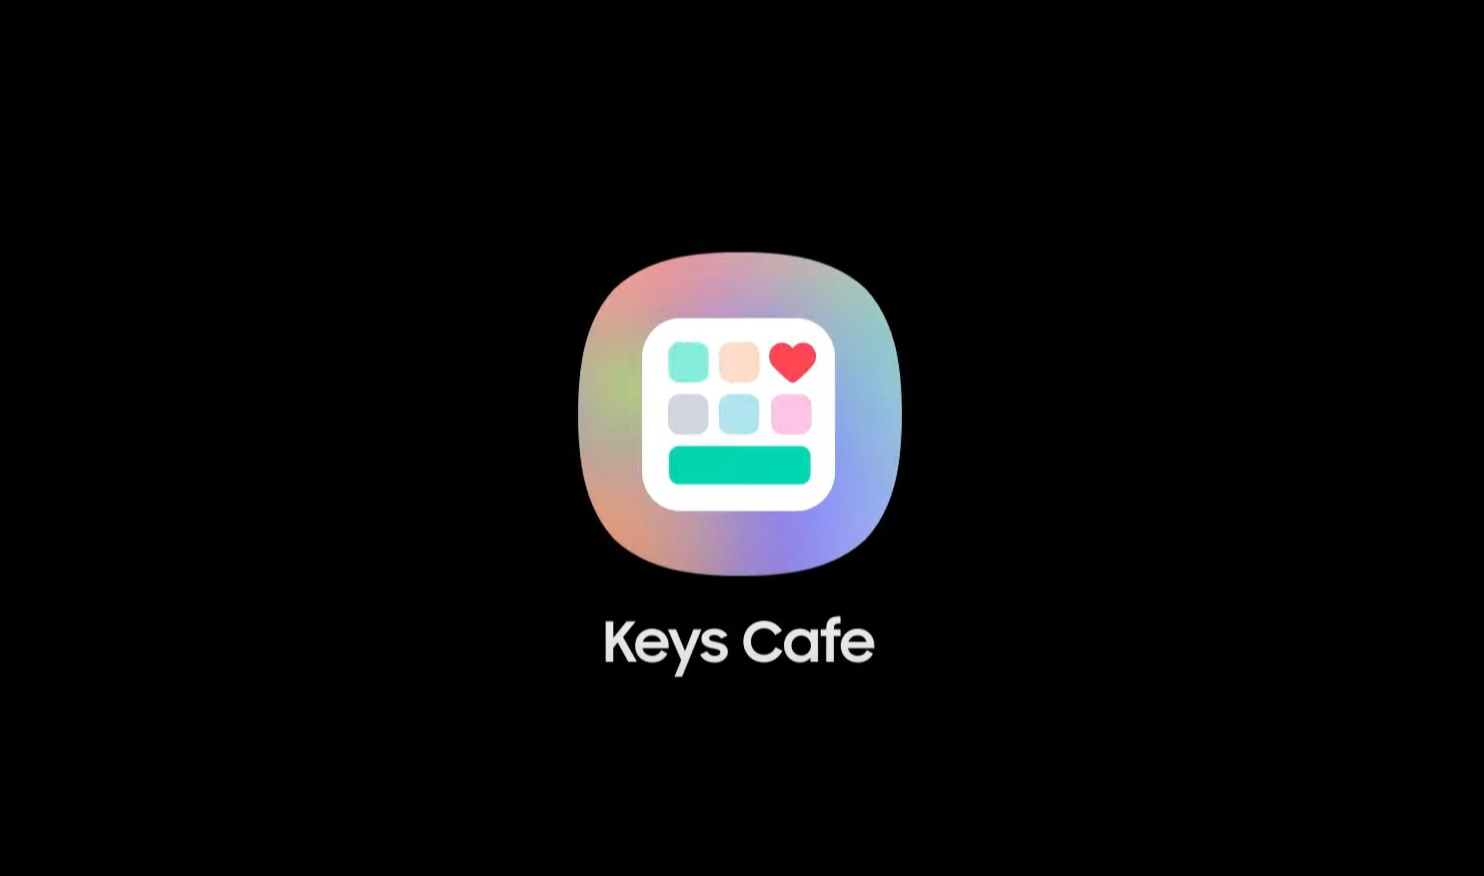 Keys Cafe APK download